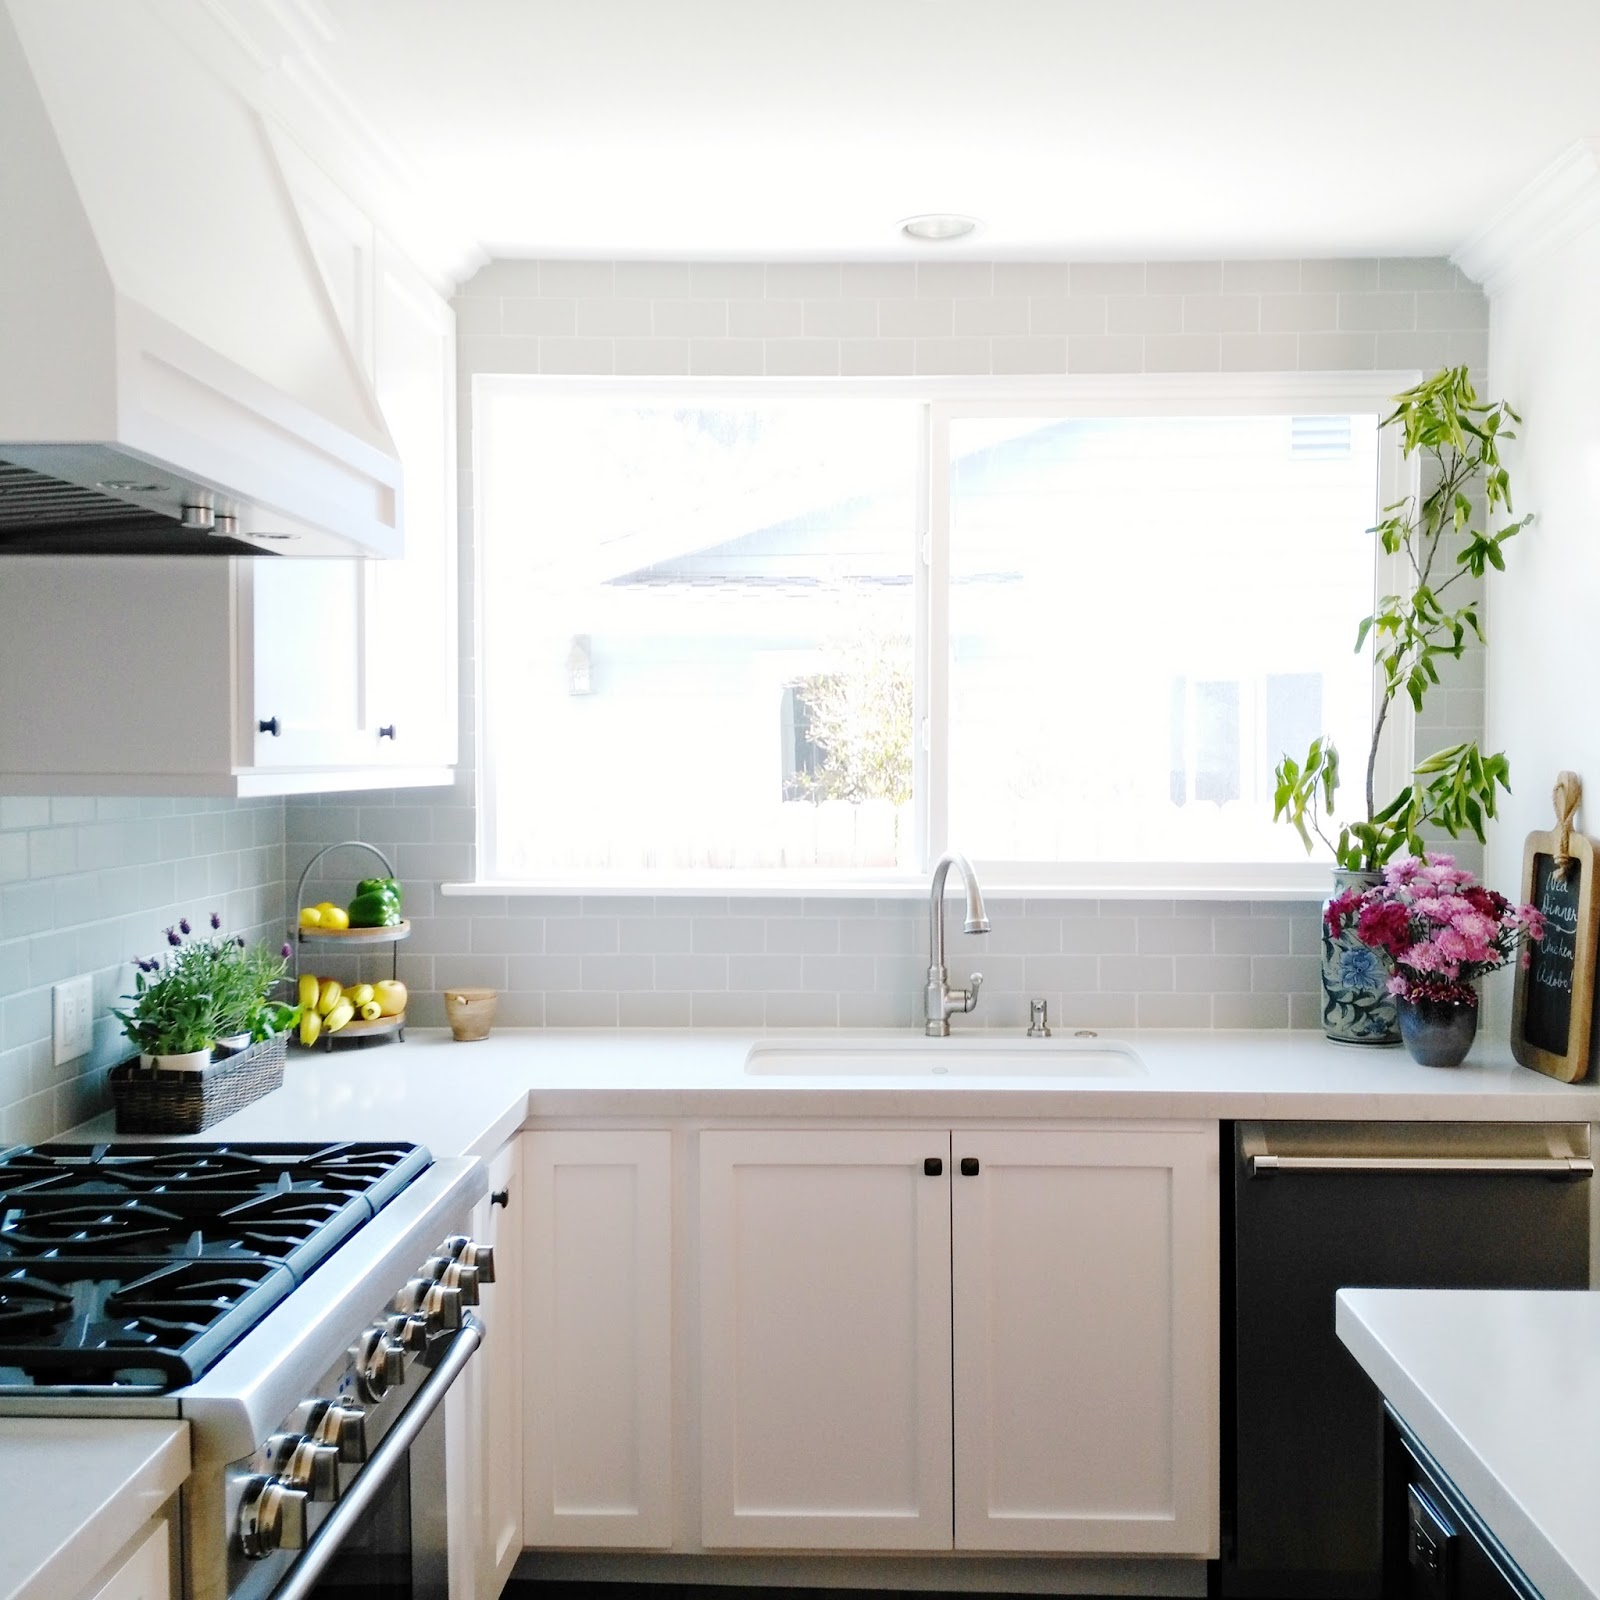 Modern Farmhouse Kitchen Backsplash cad interiors - affordable stylish interiors